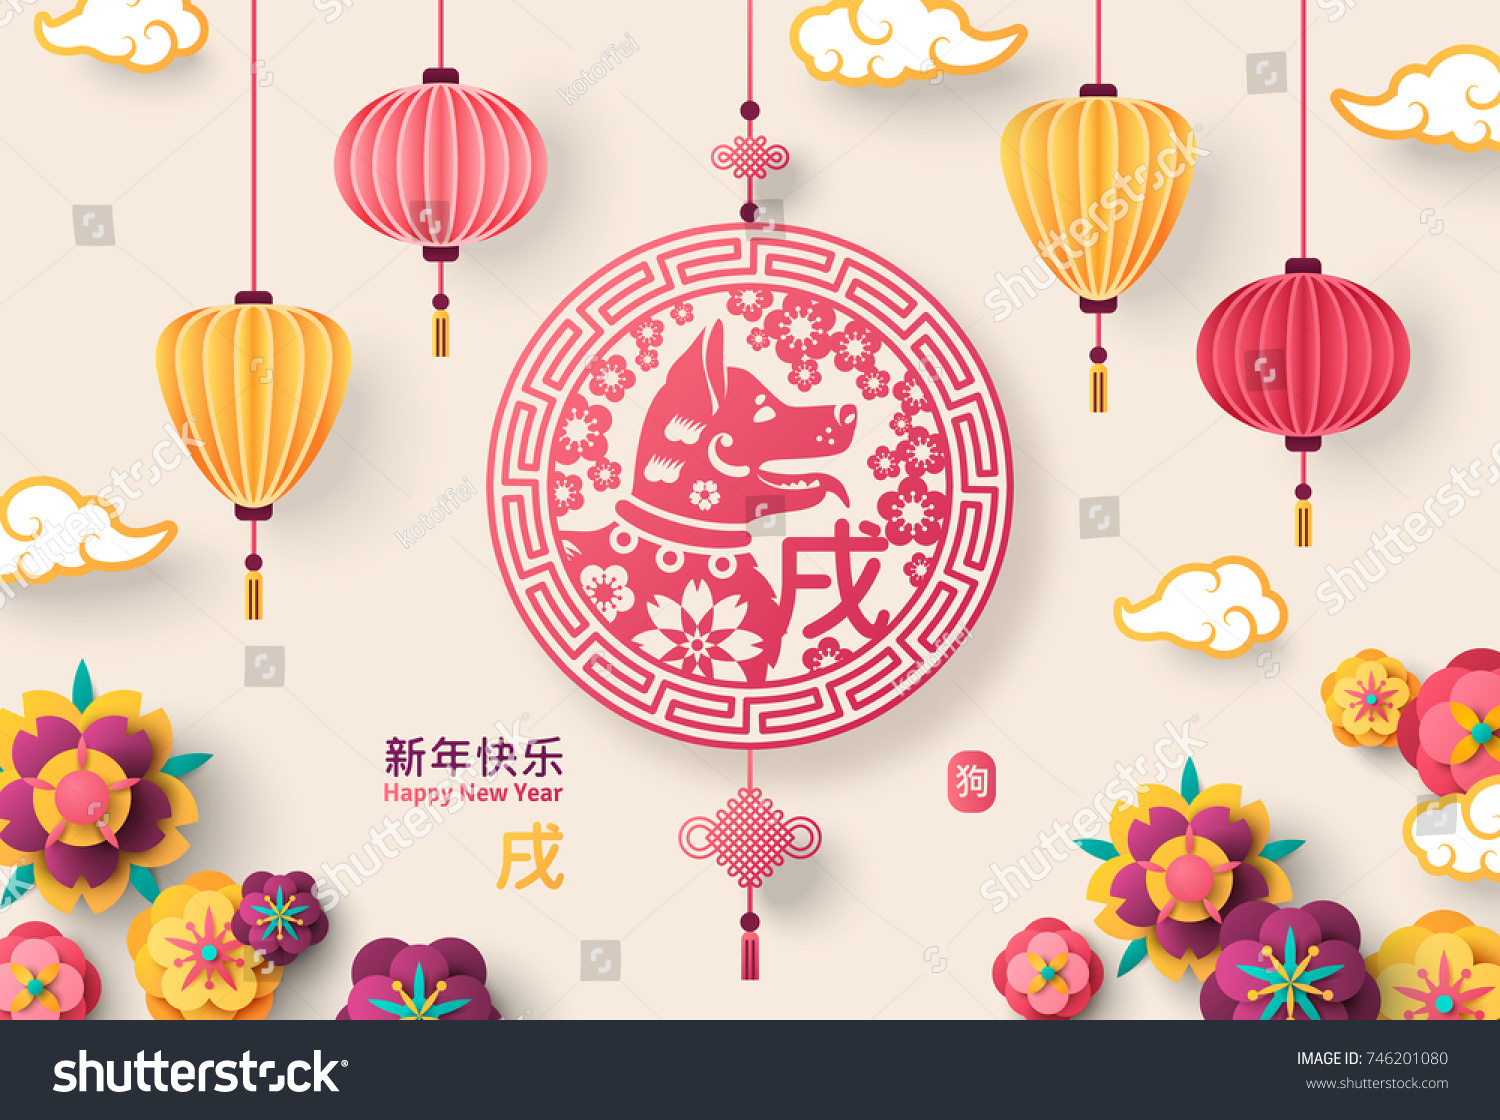 2018 chinese greeting card with hanging emblem paper oriental flowers and asian clouds on light